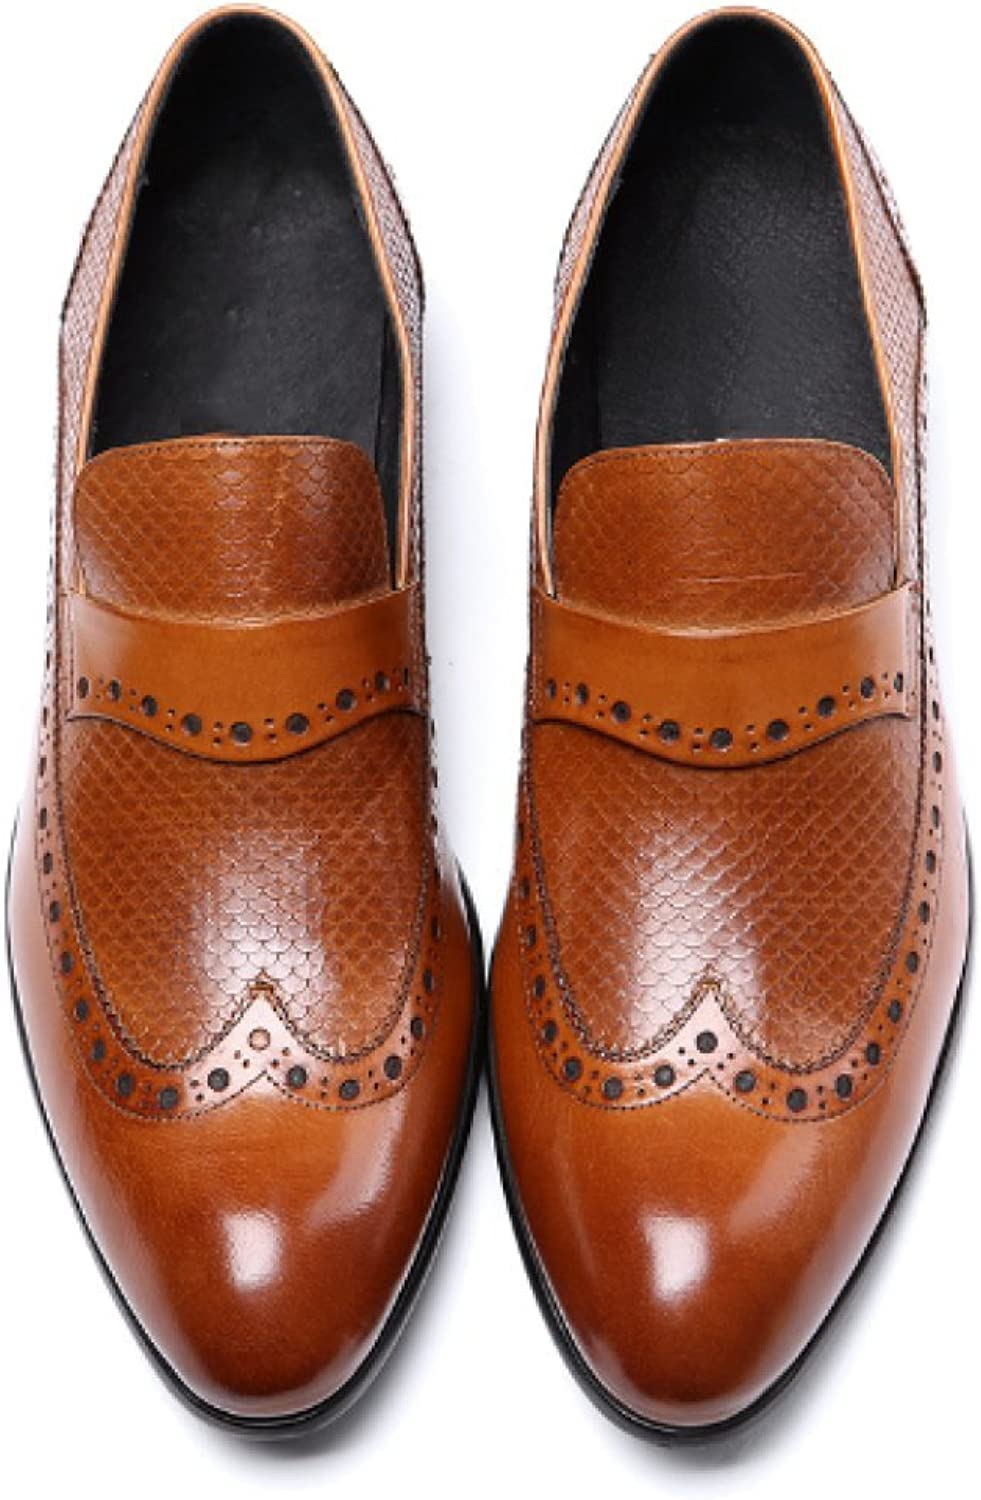 NIUMT Footwear,Business,Comfort,Breathable,Trend, Atmosphere,Pointed,Wedding shoes,Personality Pattern